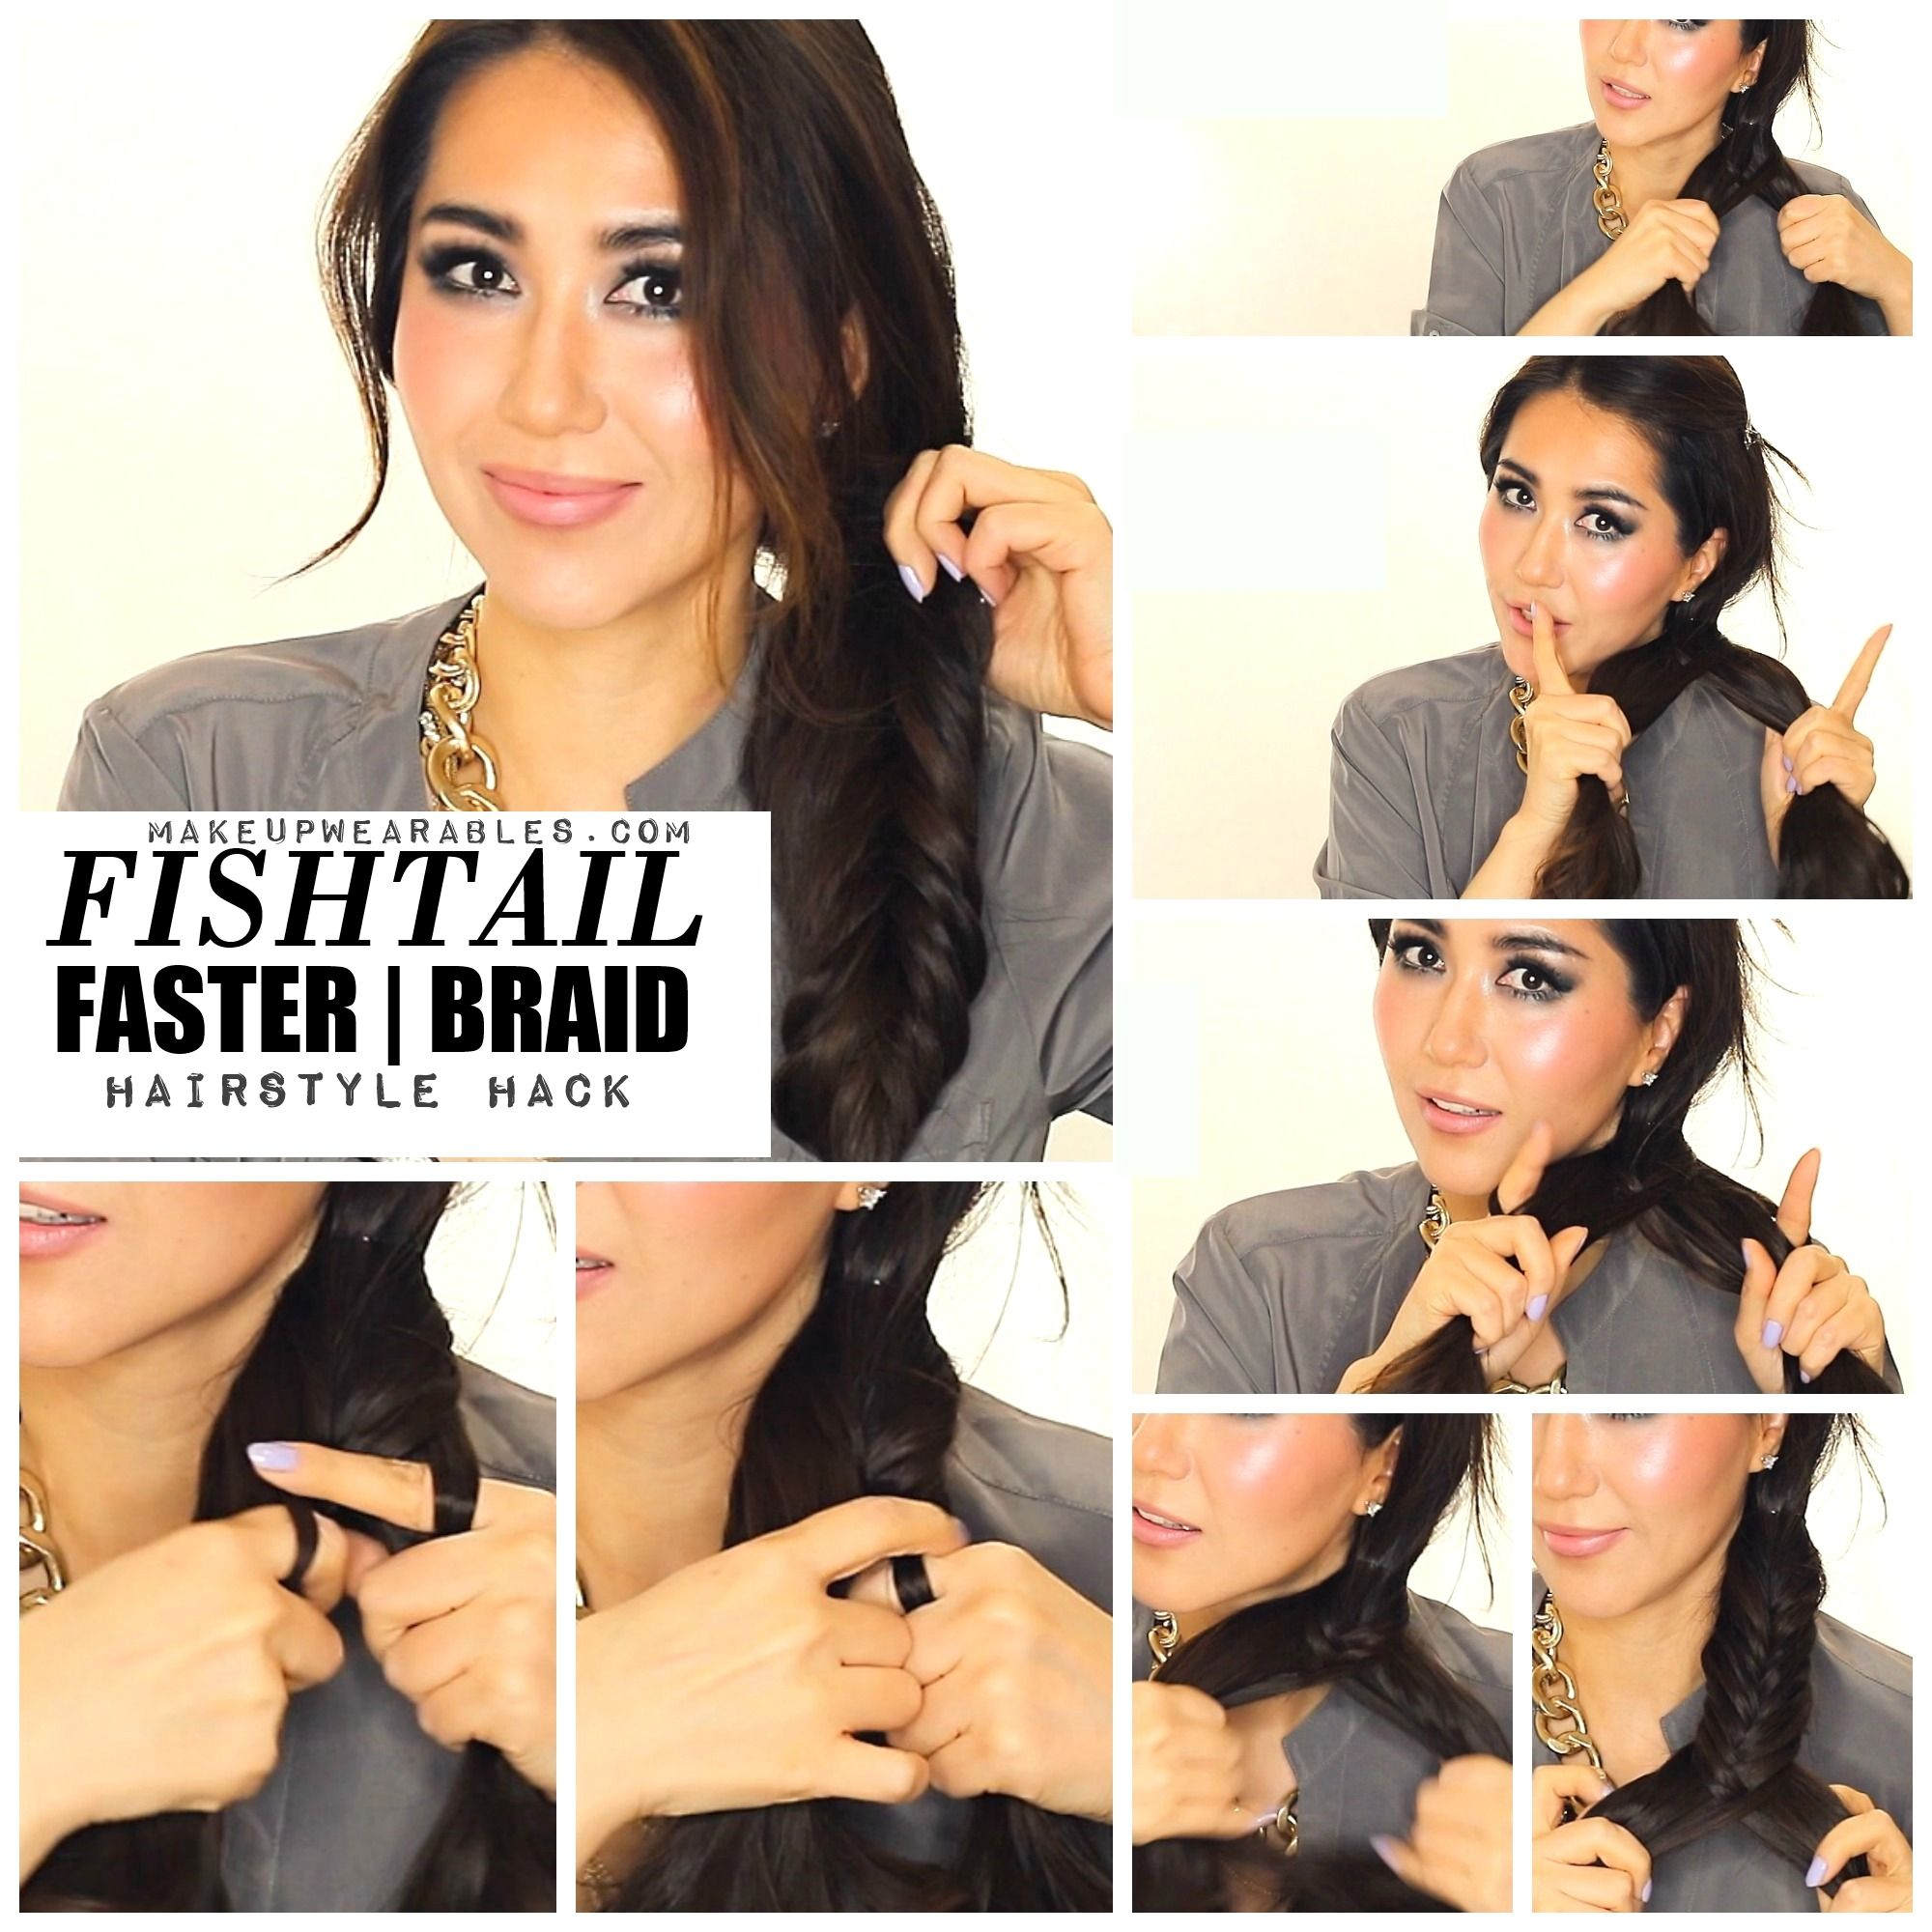 Want To Learn How To Fishtail Braid Your Own Hair The Easy Way? Watch This